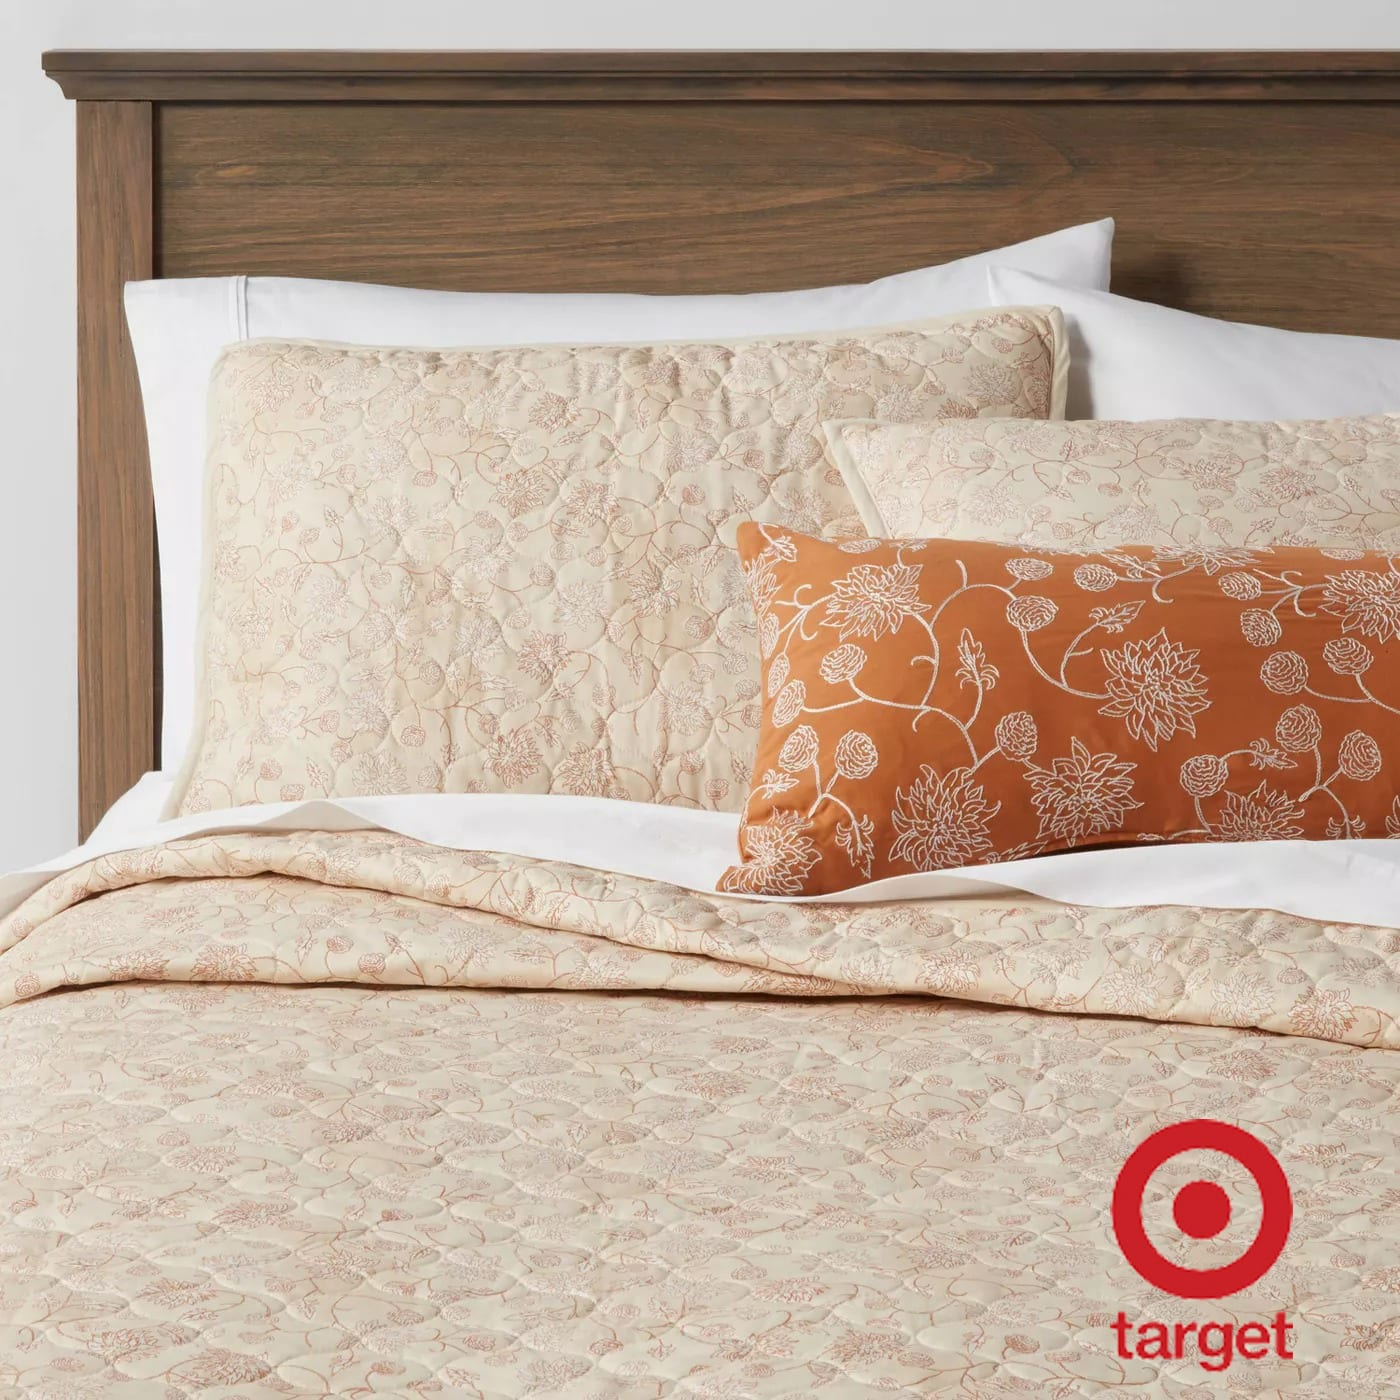 4-Pc Threshold Marion Floral Quilt Set (Full/Queen) $29.50, Nate Berkus Stitched Jersey Quilt (Citron) $34.50+ 2.5% Slickdeals Cashback (PC Req'd) at Target + Free Pickup